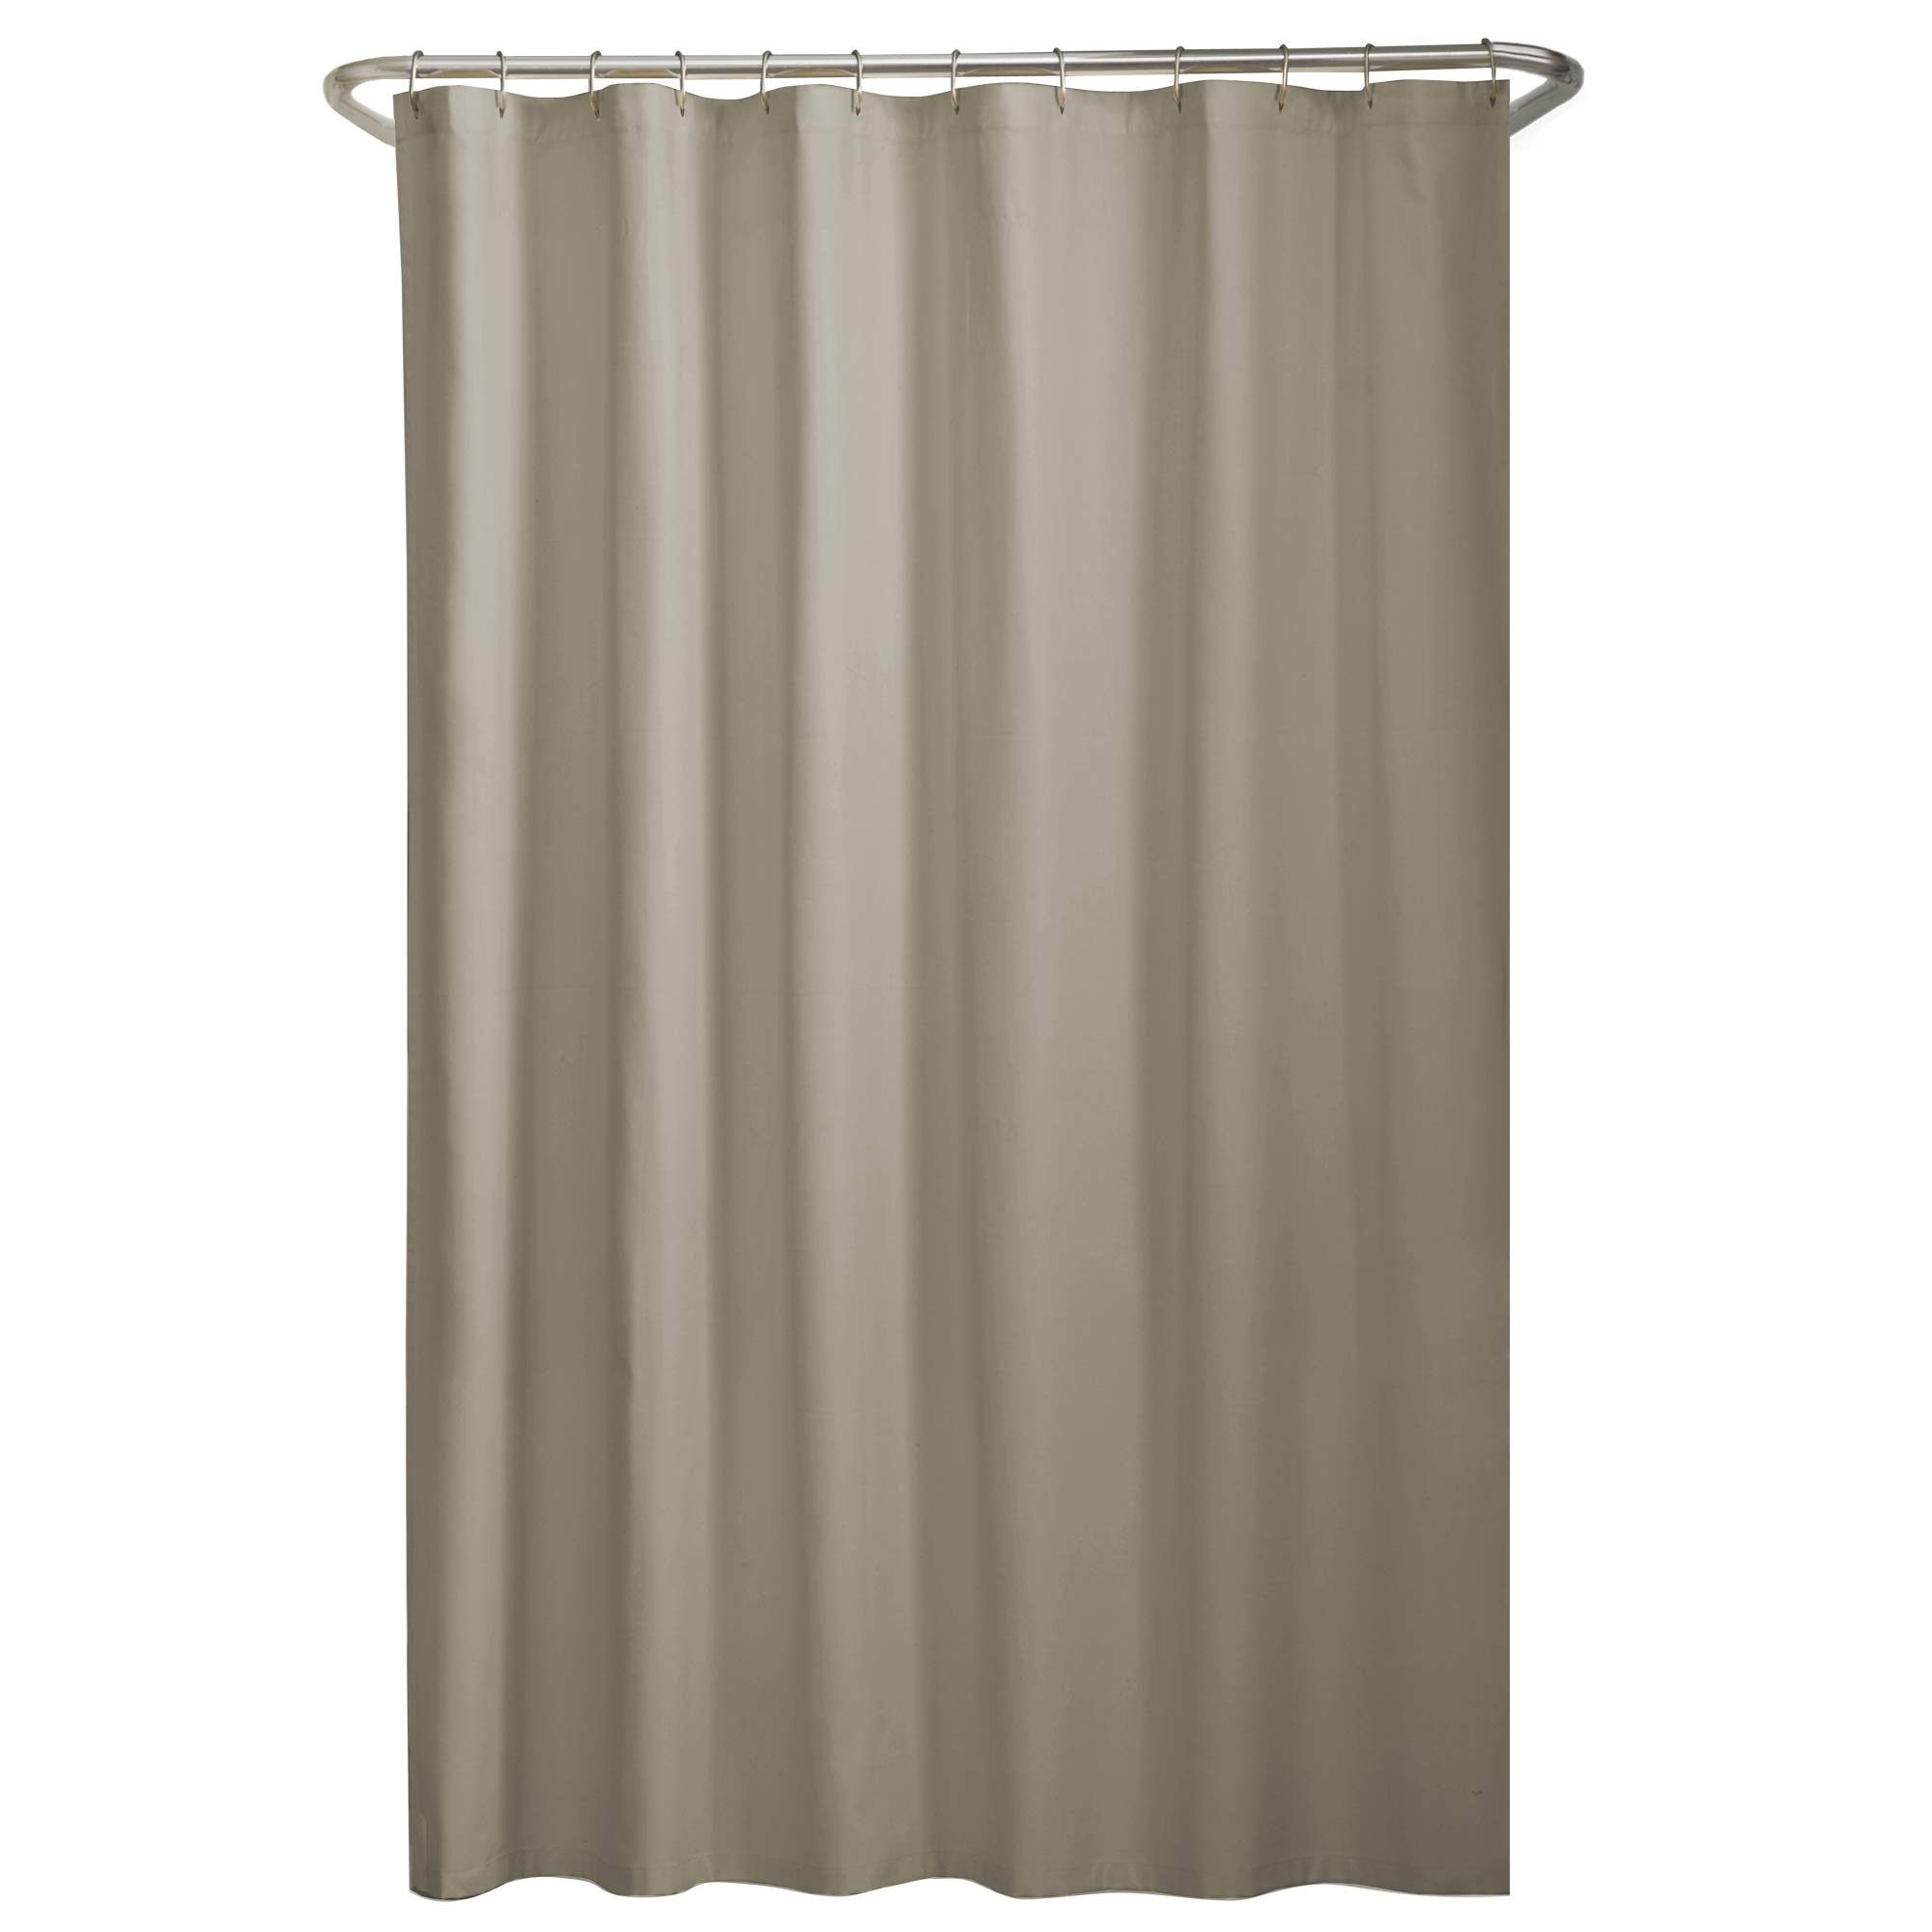 MAYTEX Water Repellent Fabric Shower Curtain or Liner, 70'' x 72'', Beige